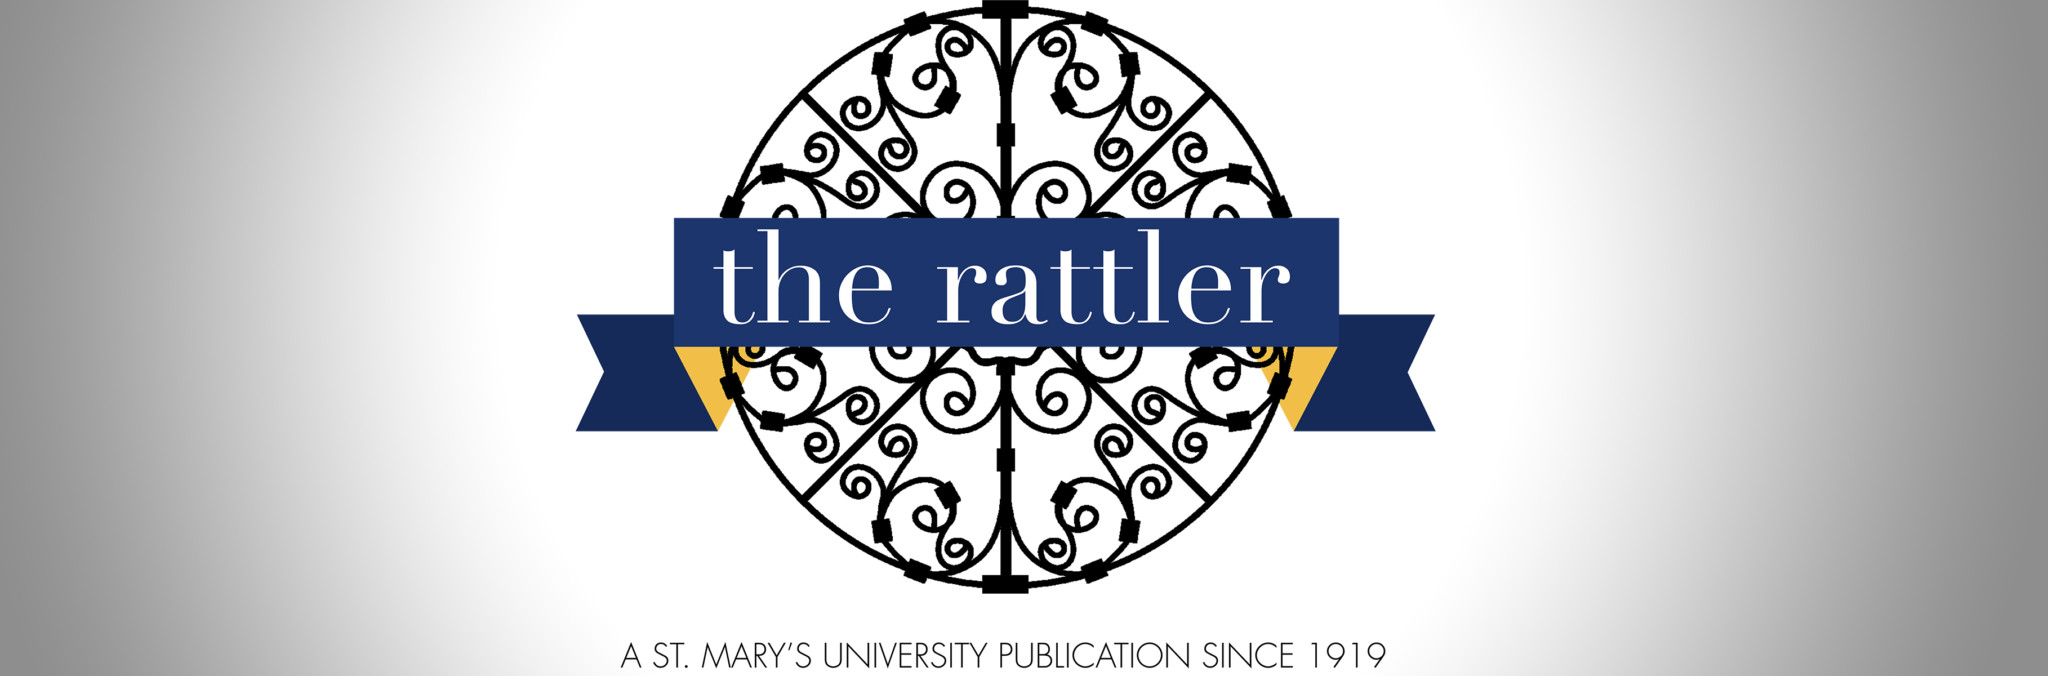 The Rattler graphic